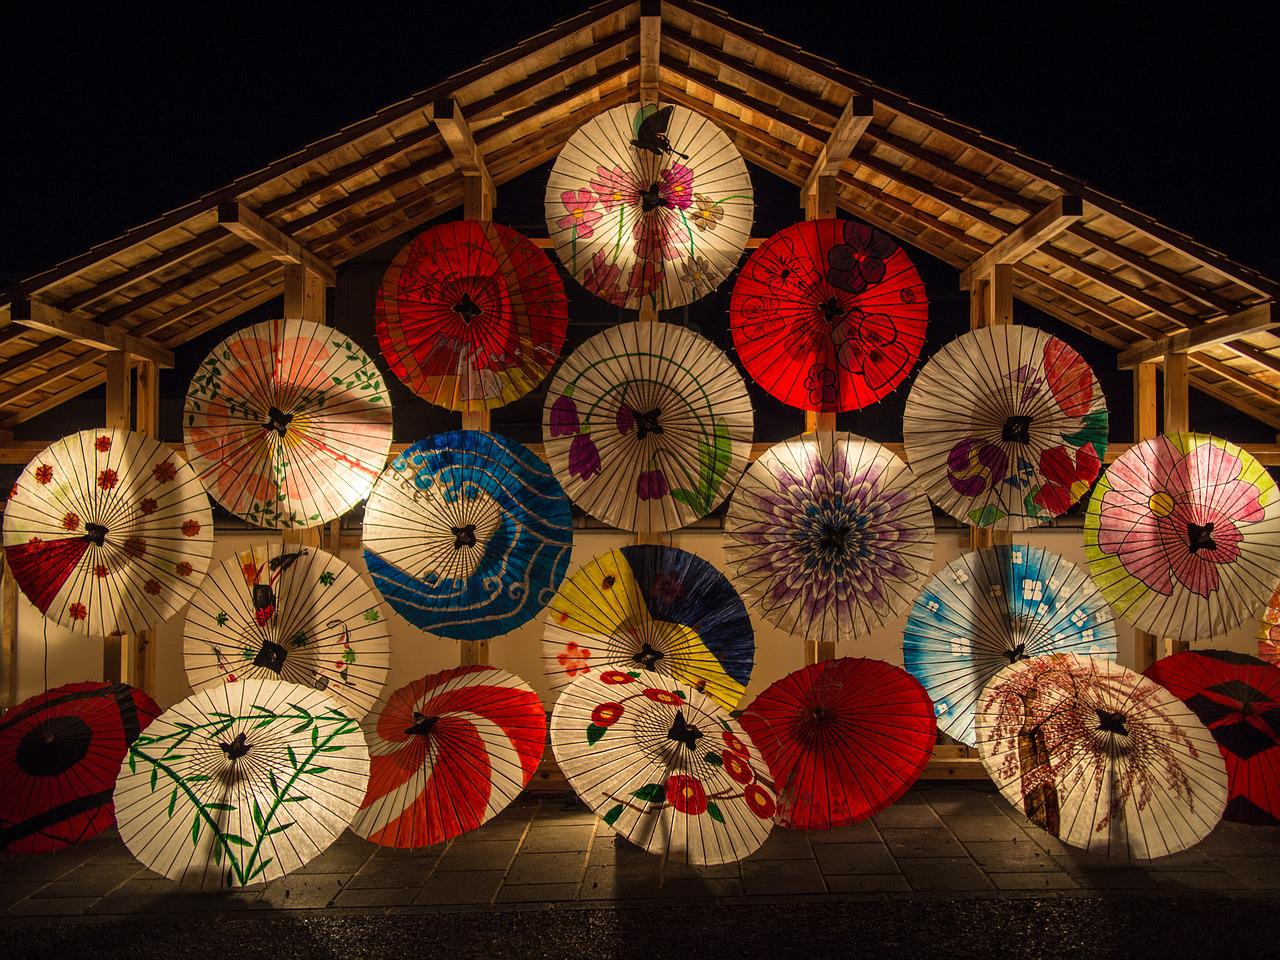 Japanese umbrellas 636870 1280